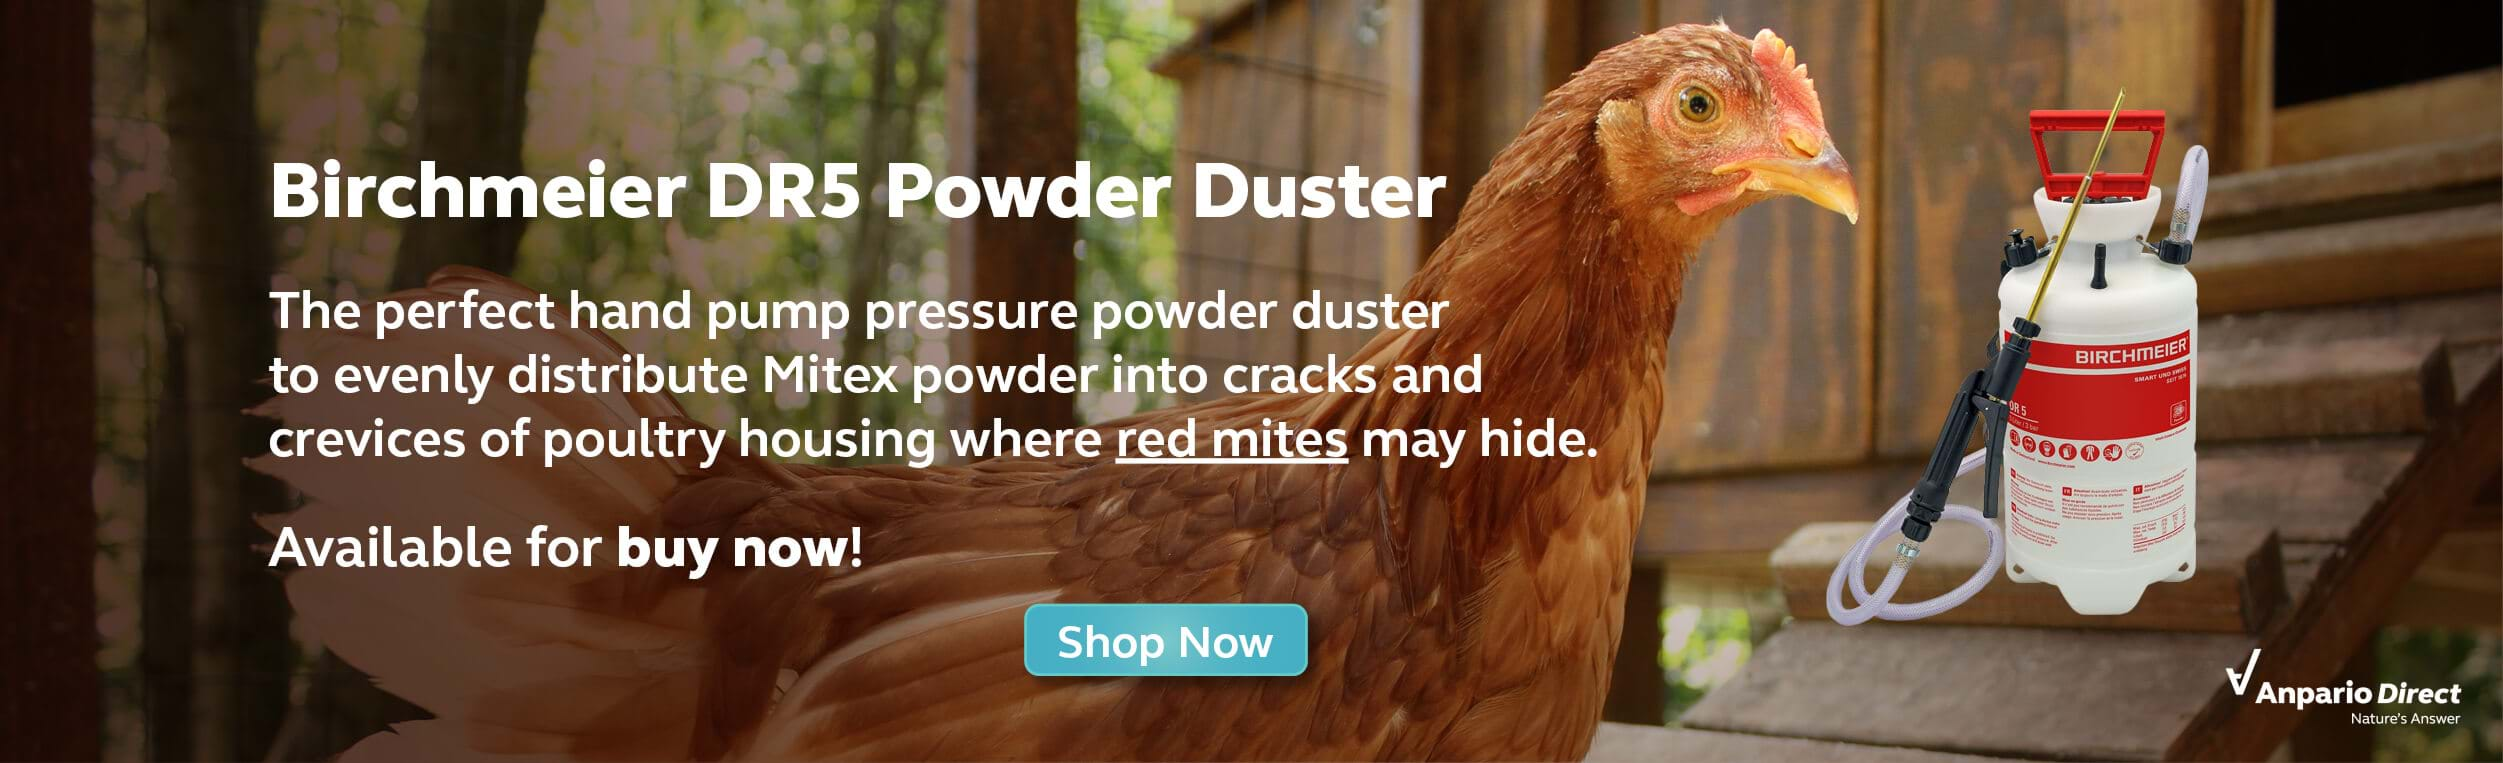 Birchmeier DR5 Powder Duster – the Ideal Mitex Applicator